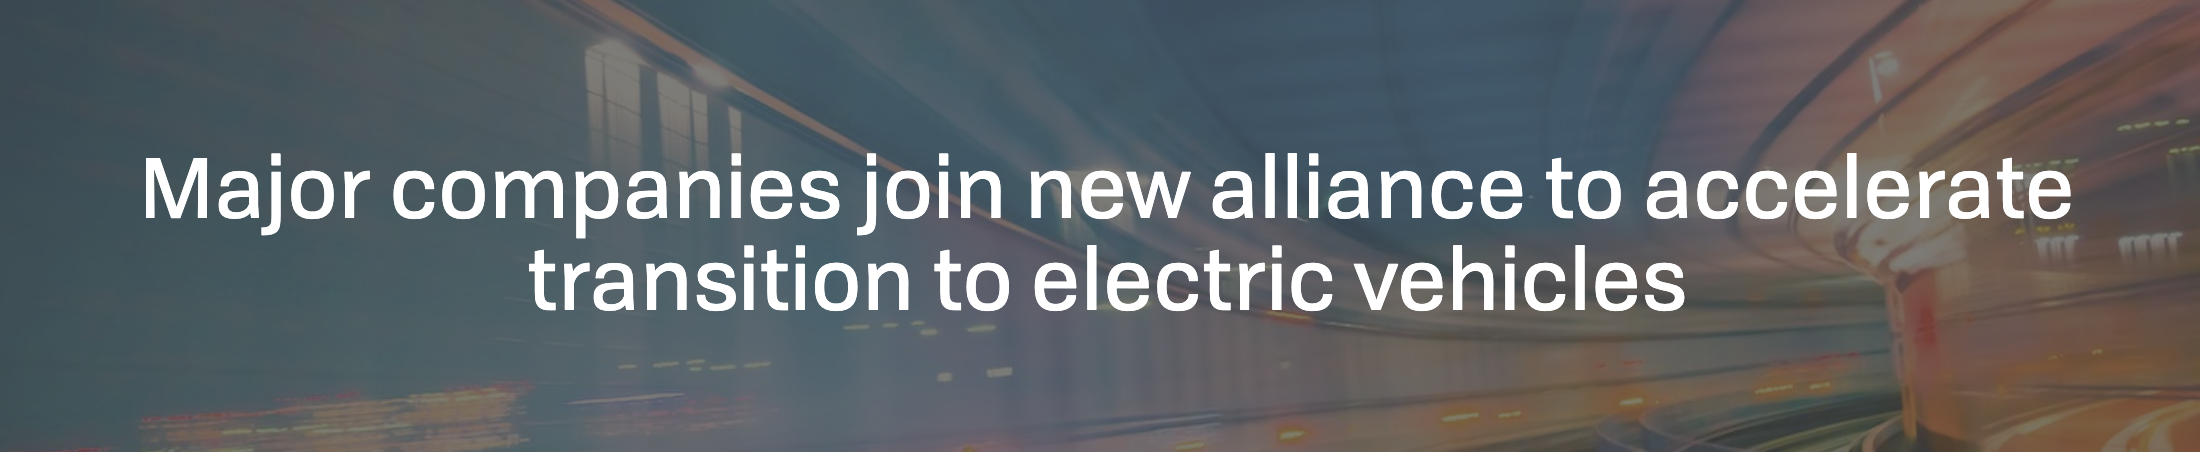 Major companies join new alliance to accelerate transition to electric vehicles